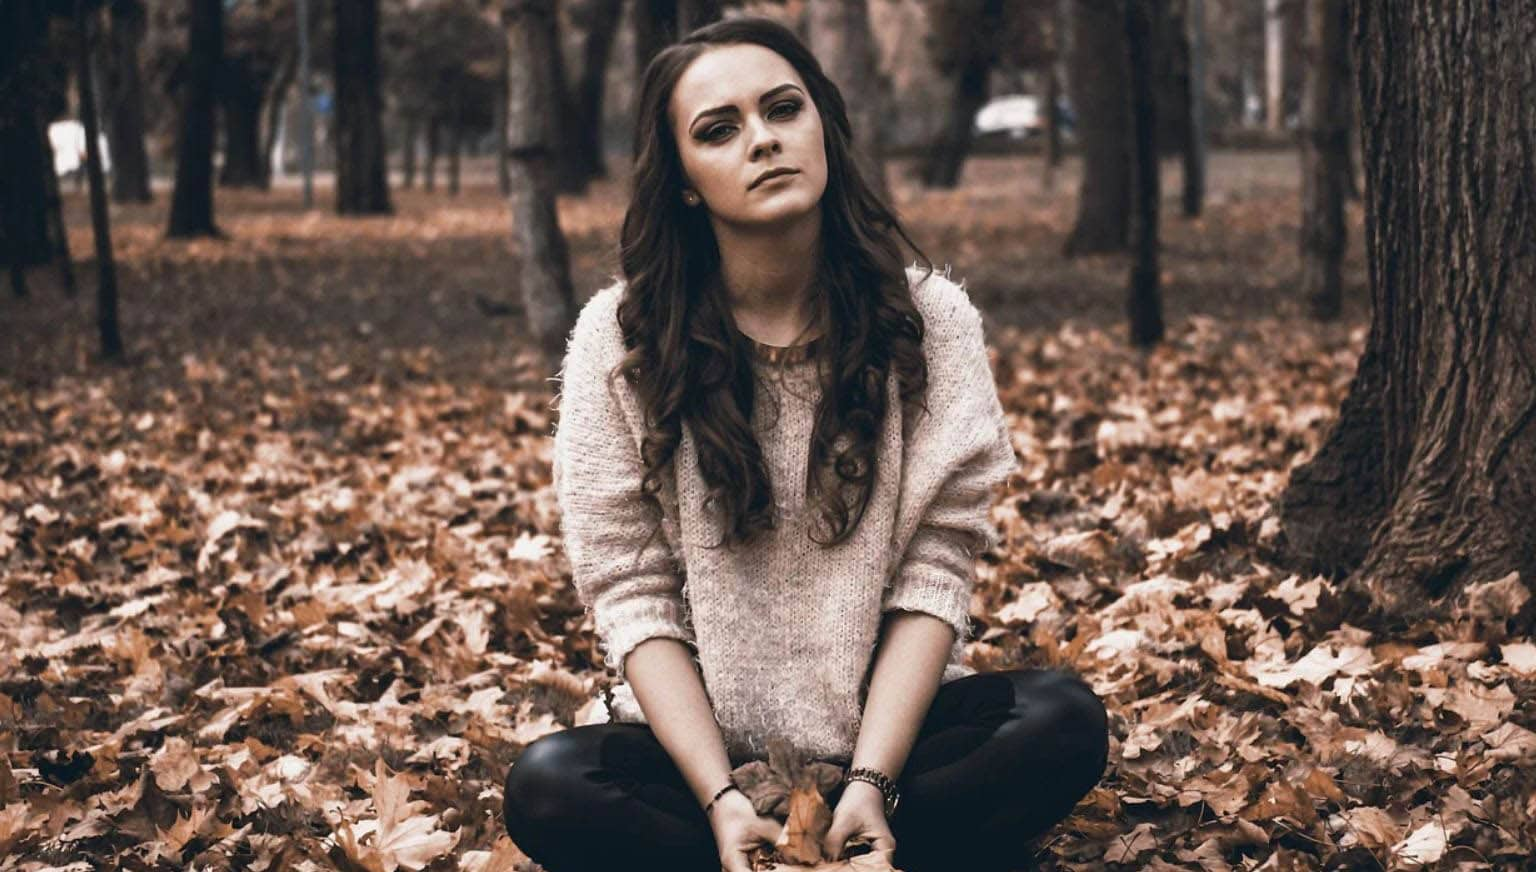 Therapy and Counseling for Kids and Teens, The Relationship Center of Michigan